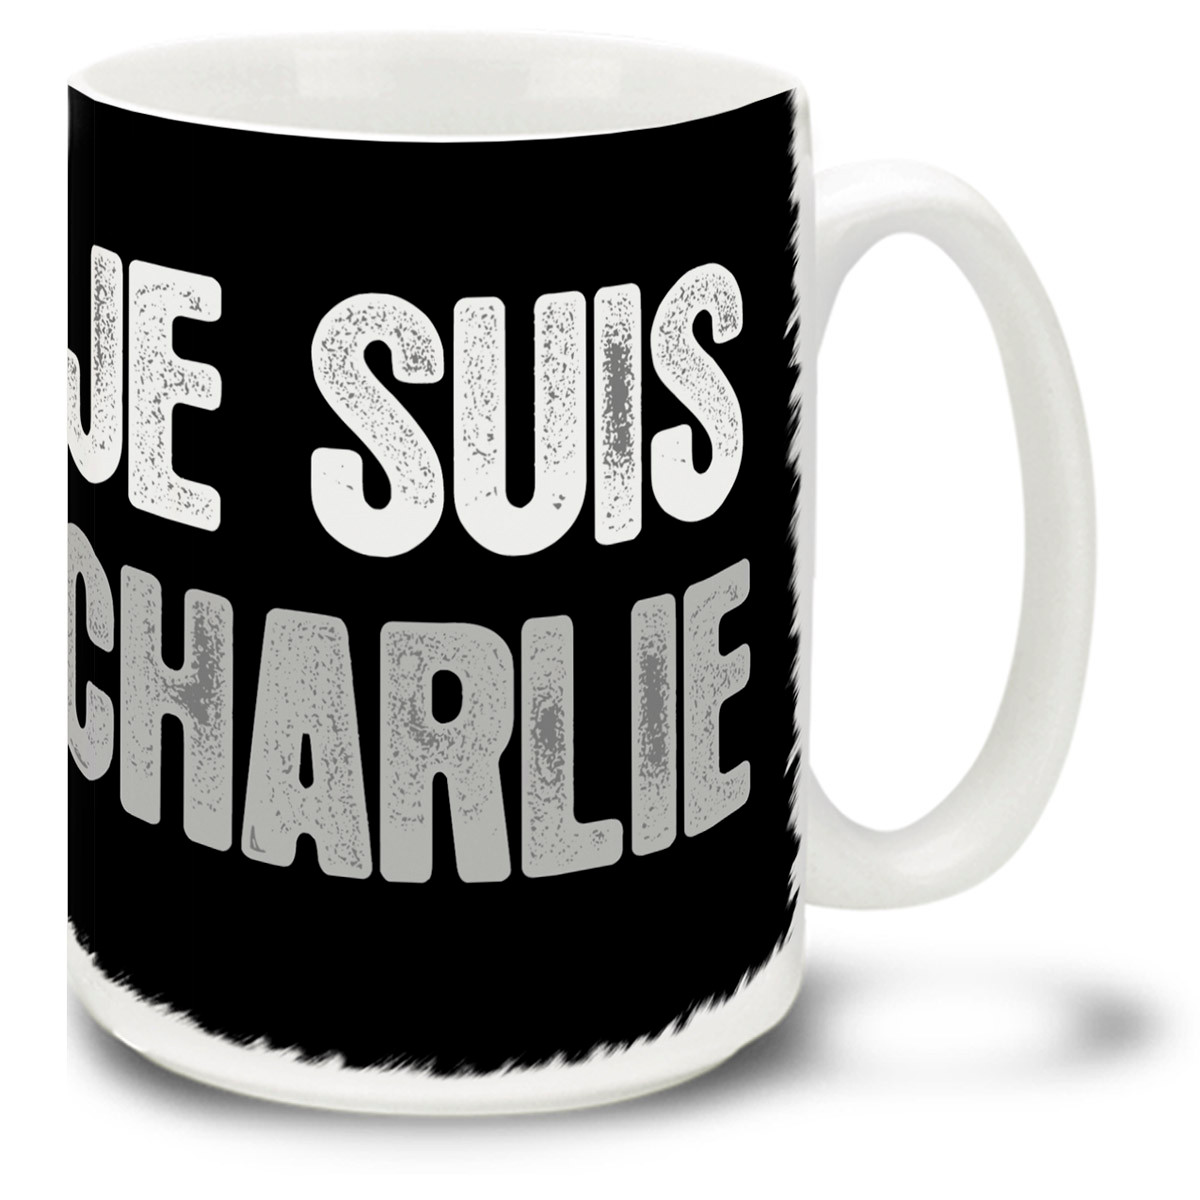 Support Freedom Of Expression And Charlie Hebdo With A Je Suis Charlie I Am Charlie Mug